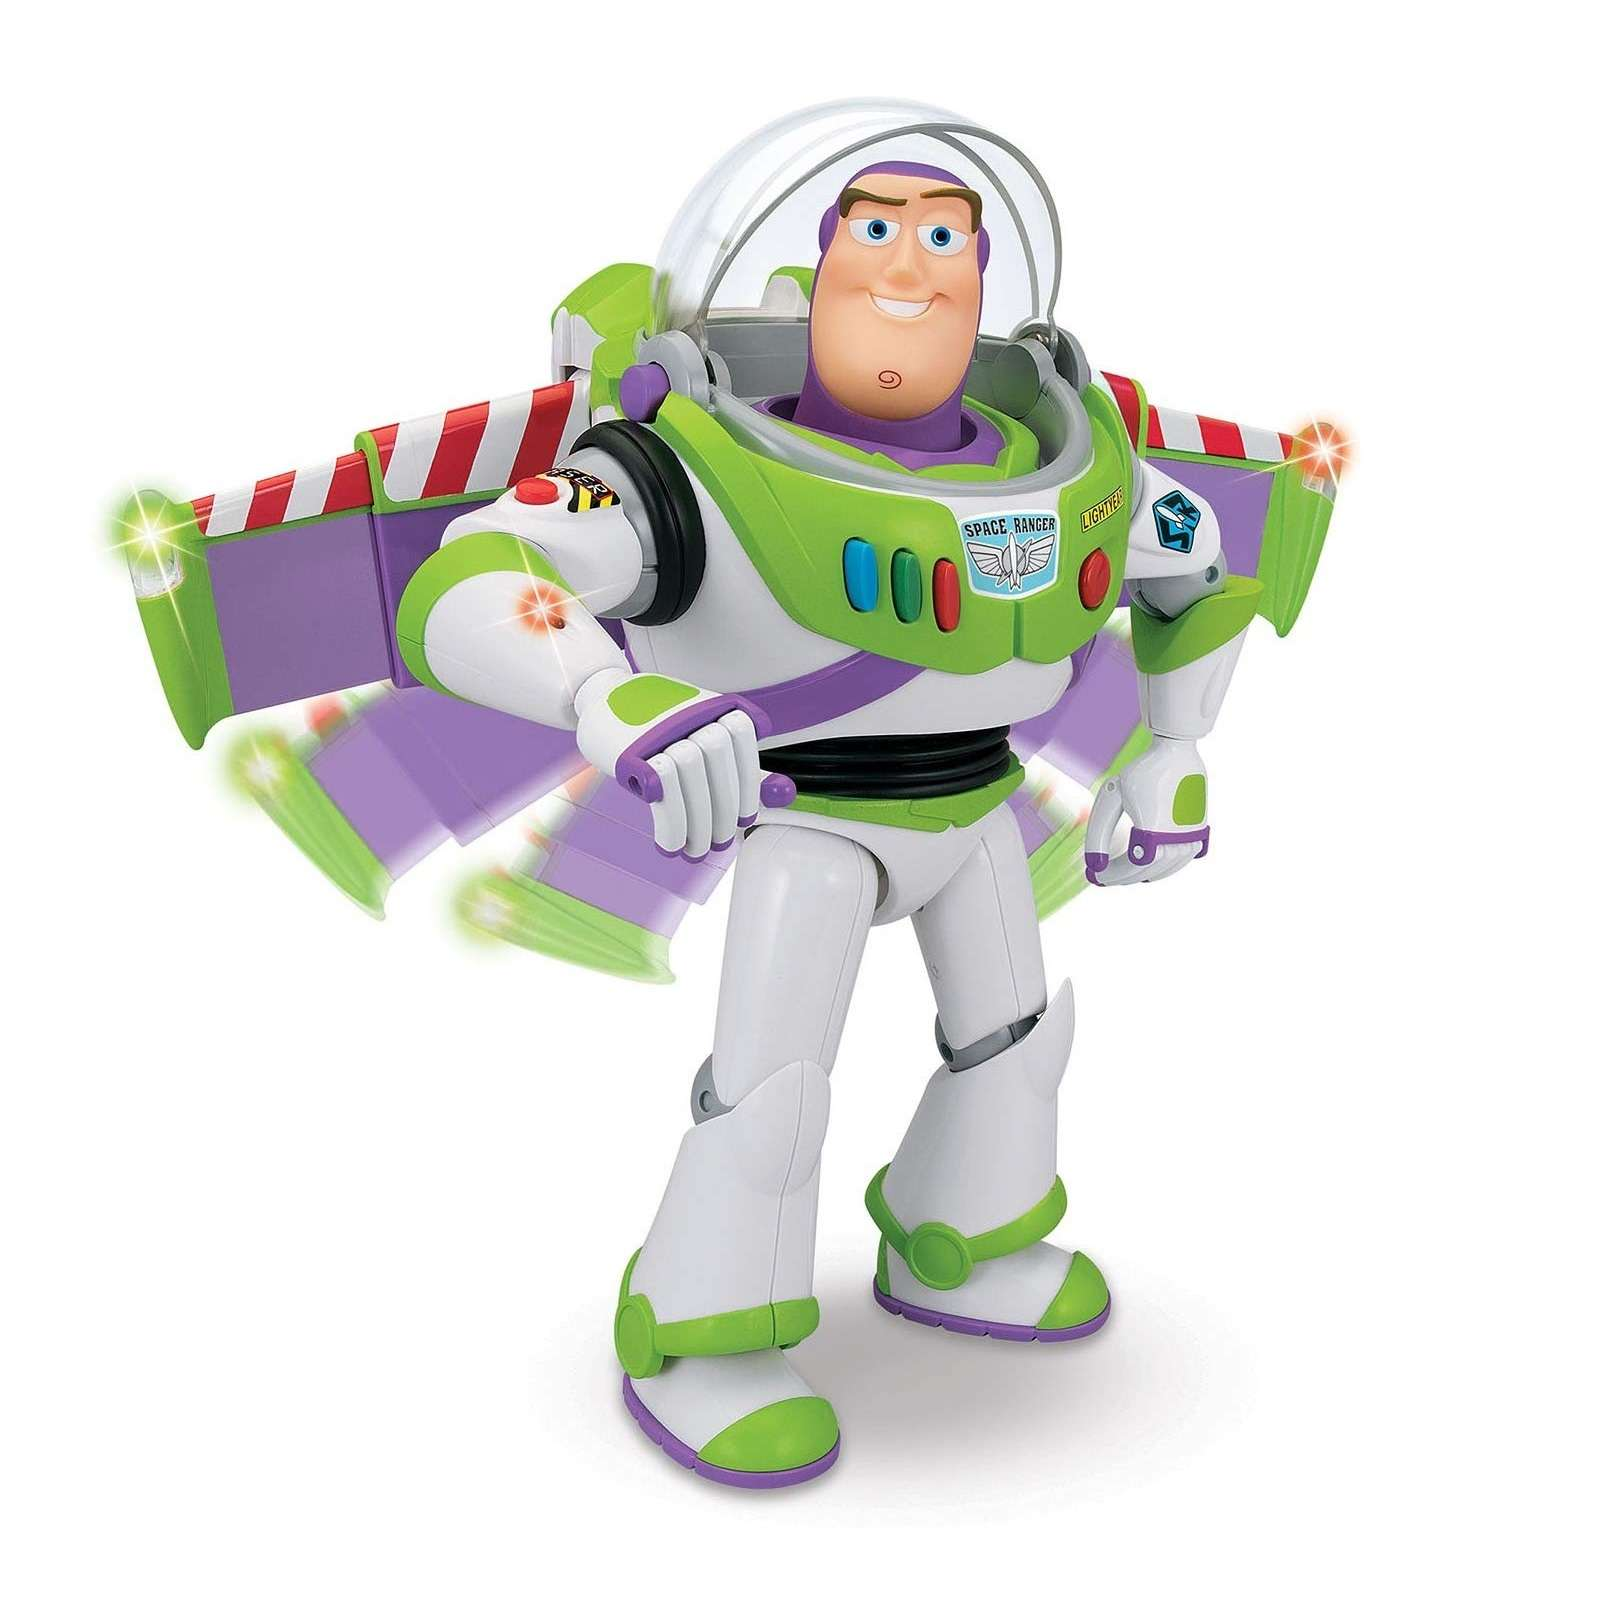 Signature Collection: Toy Story - Buzz Lightyear Space Ranger Photo